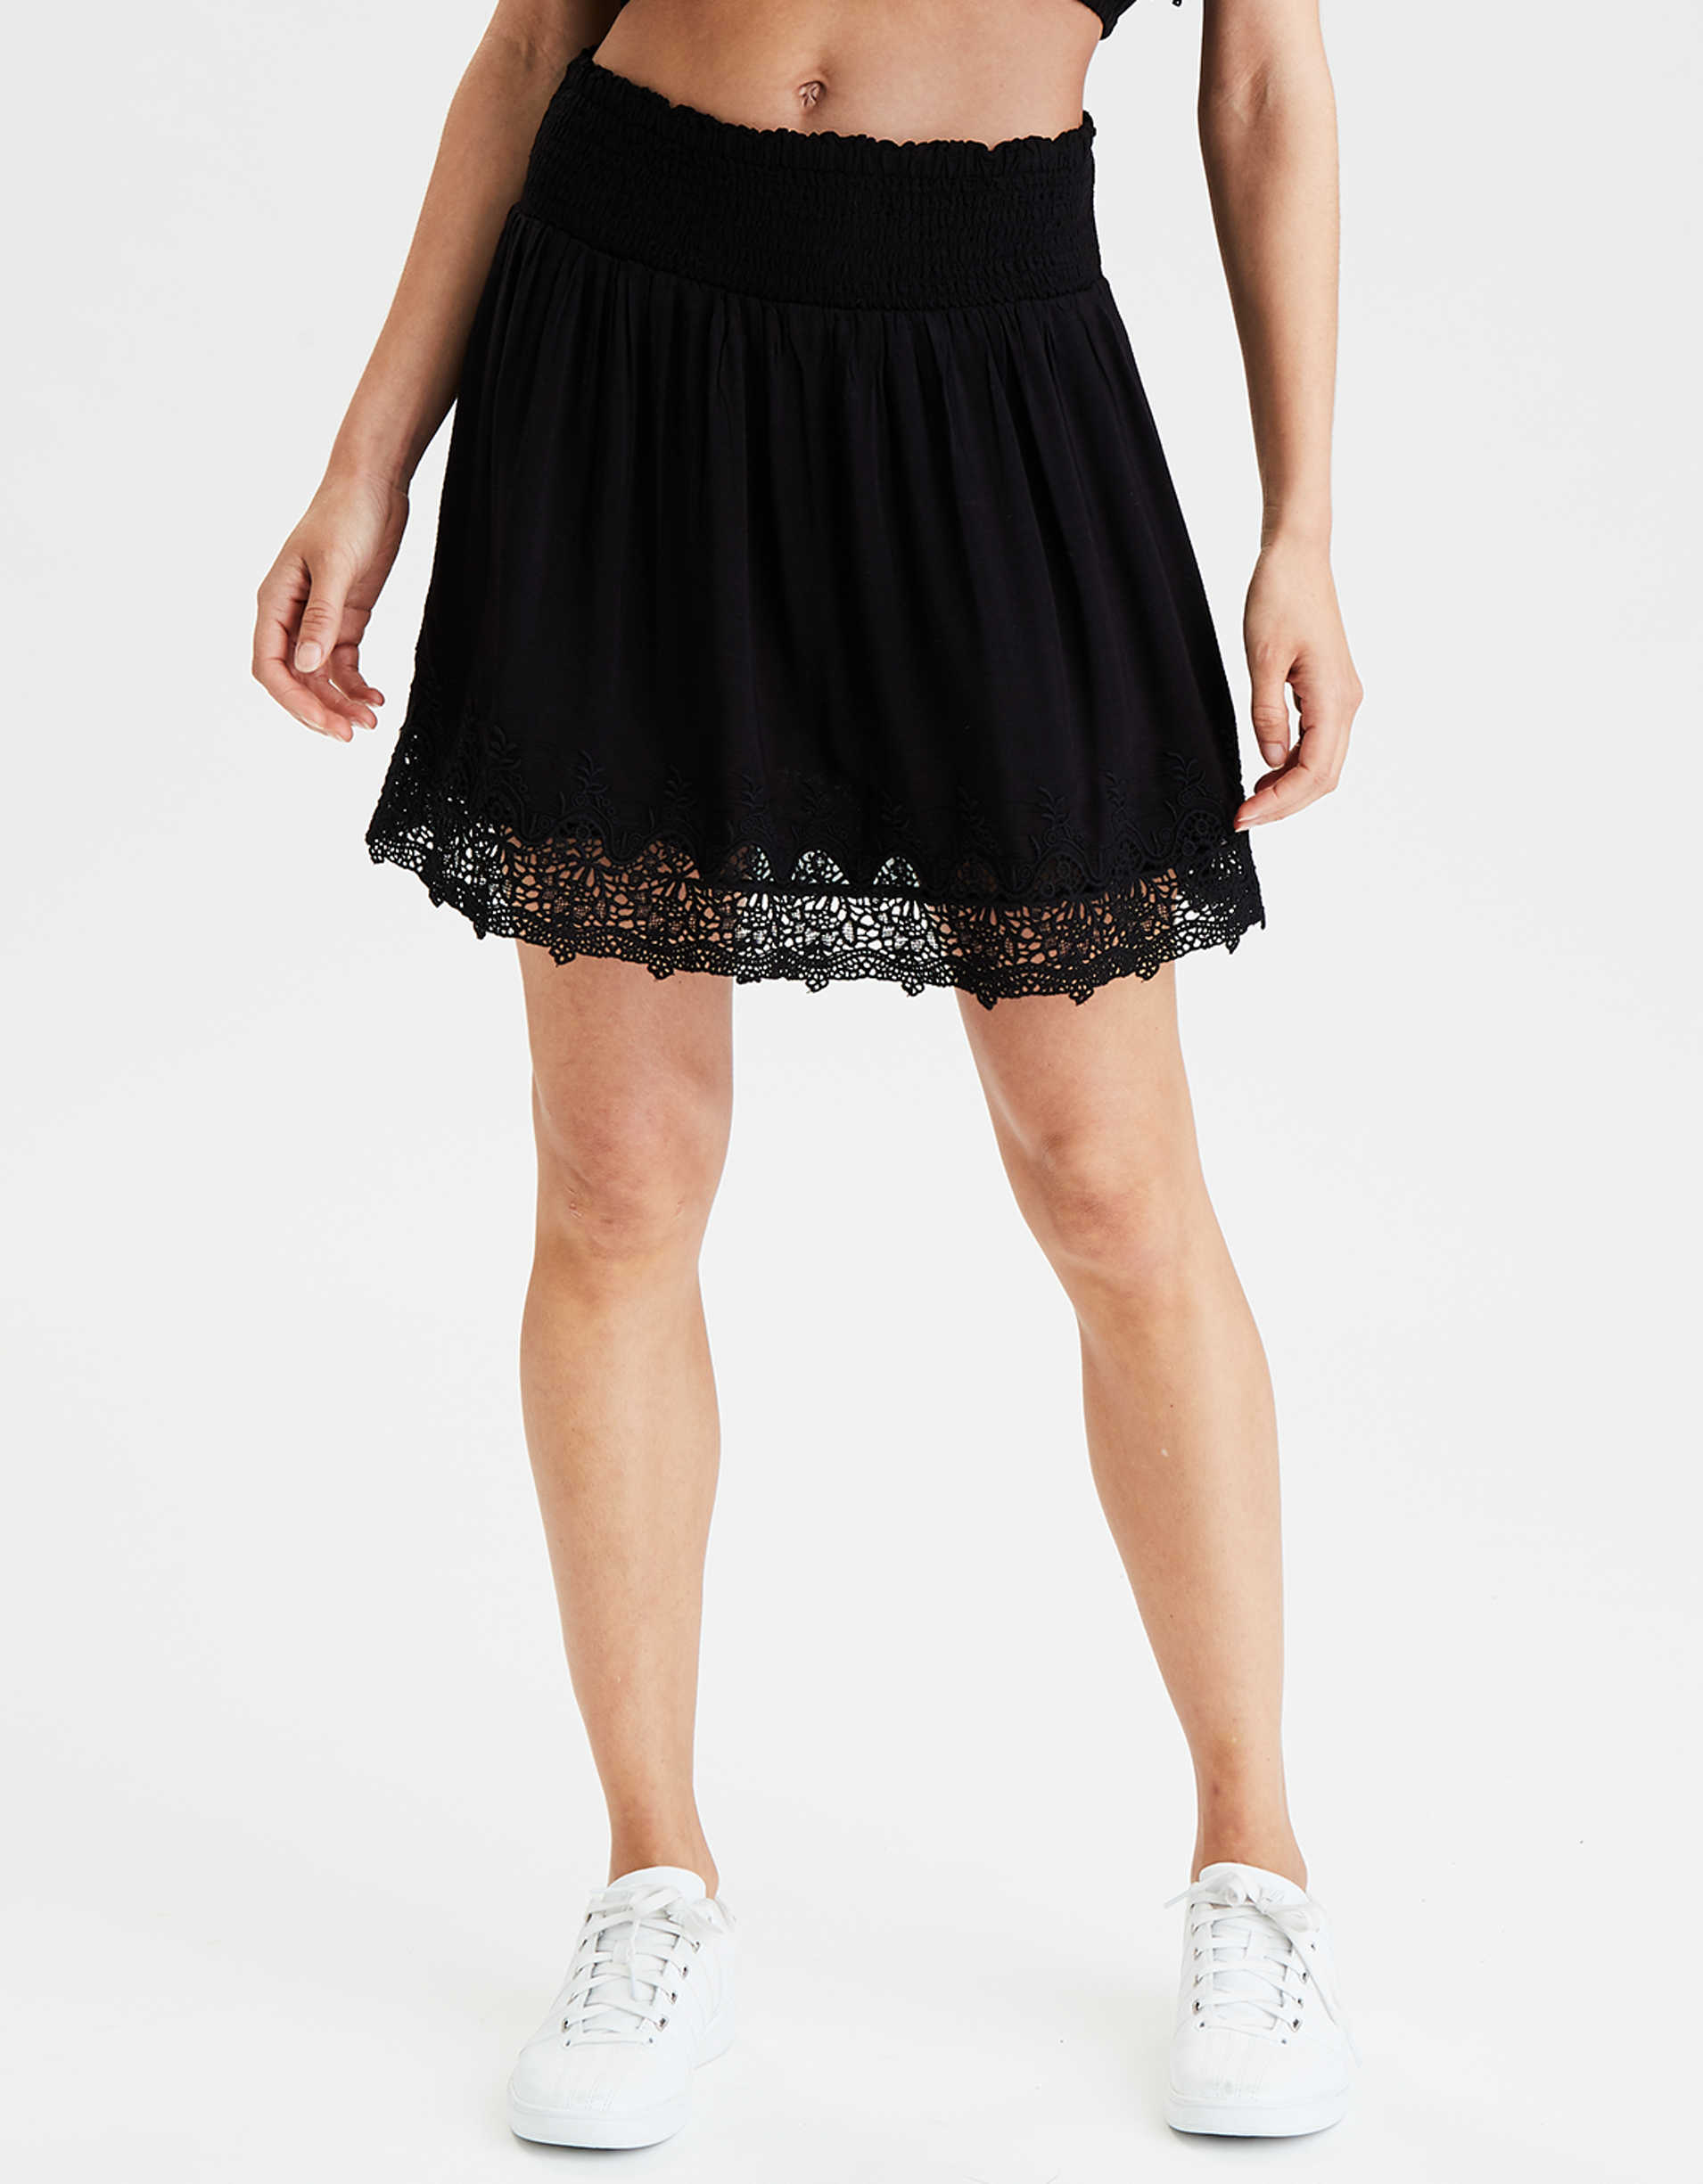 AE High-Waisted Lace Mini Skirt